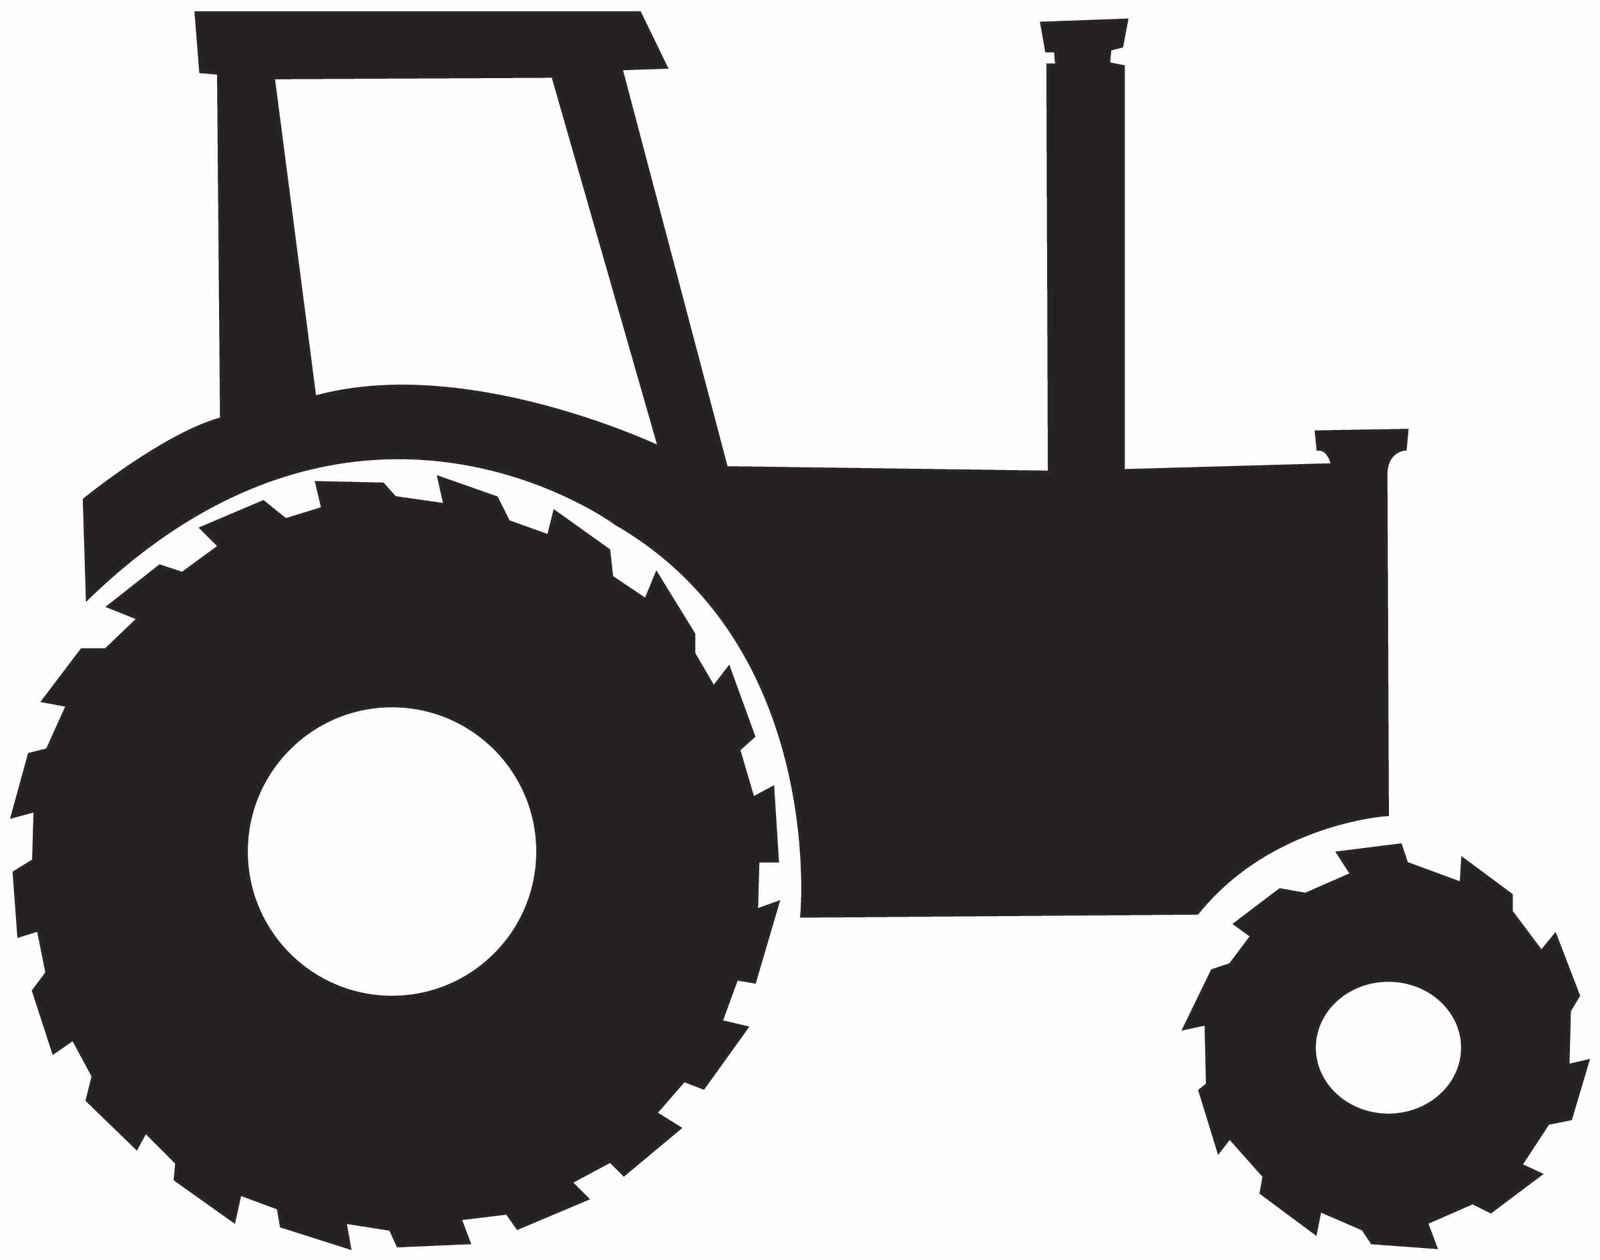 Free tractor clipart free clipart graphi-Free tractor clipart free clipart graphics image and photos image-15